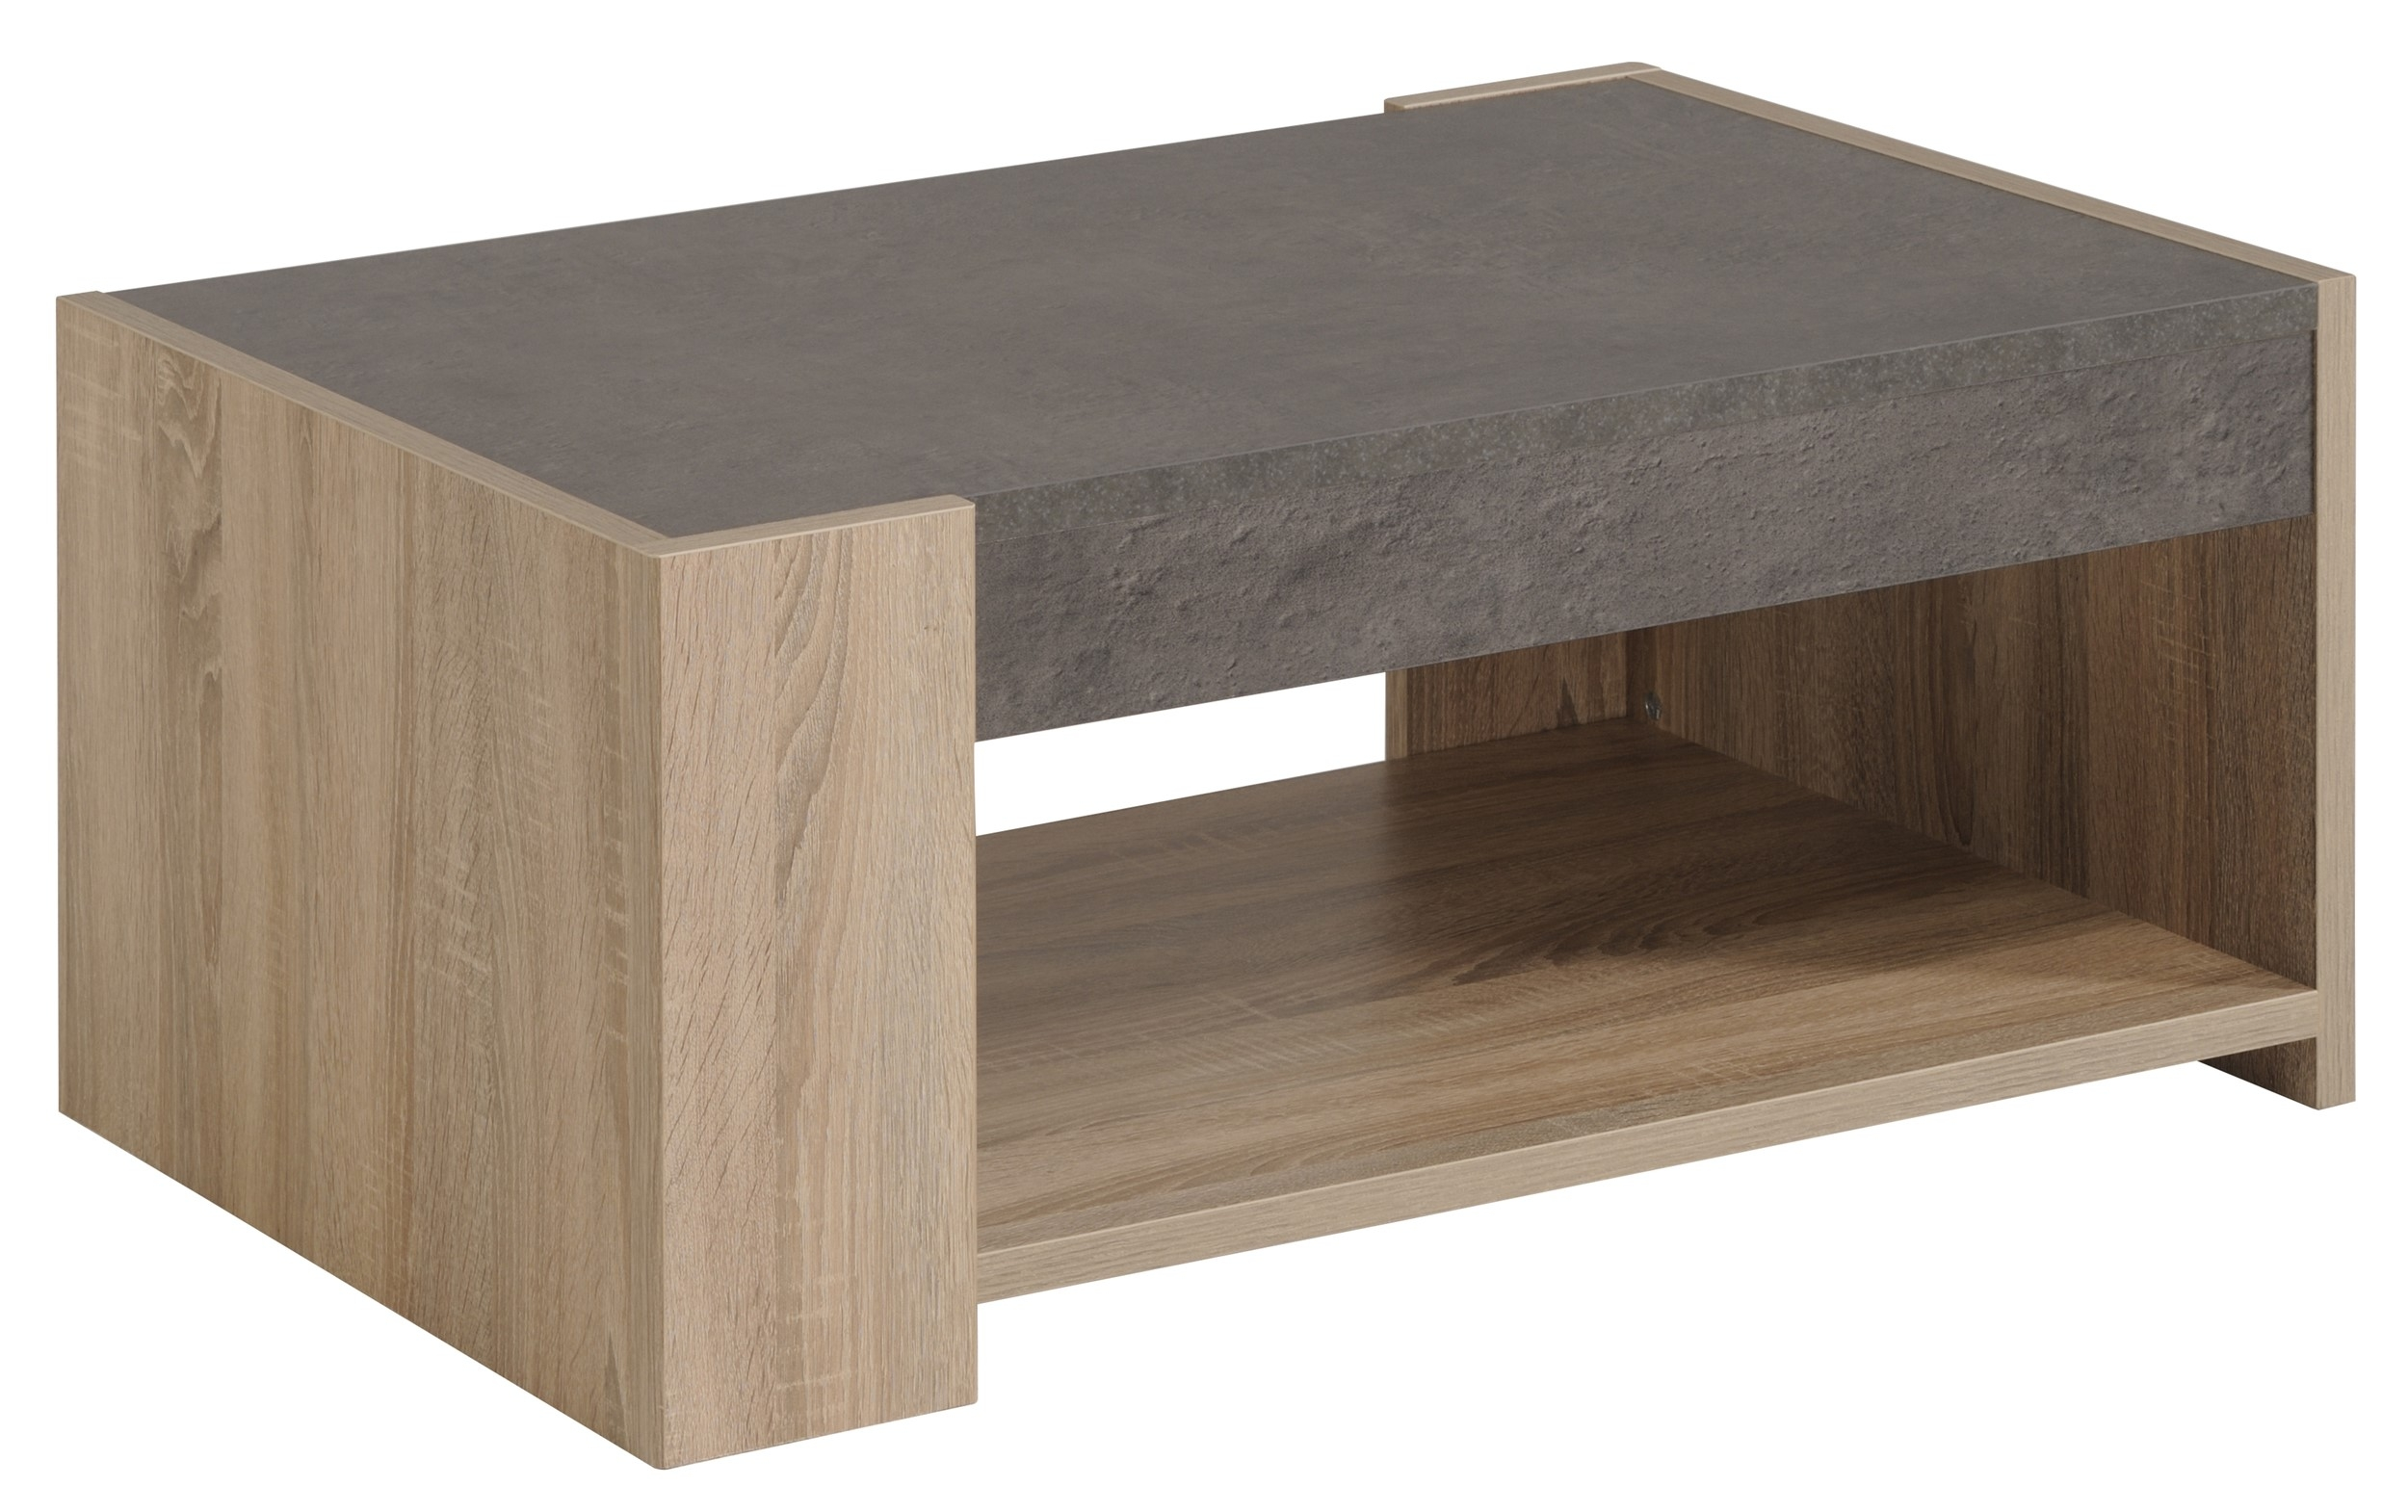 Table Basse Chene Brut Home Design & Architecture Cilif